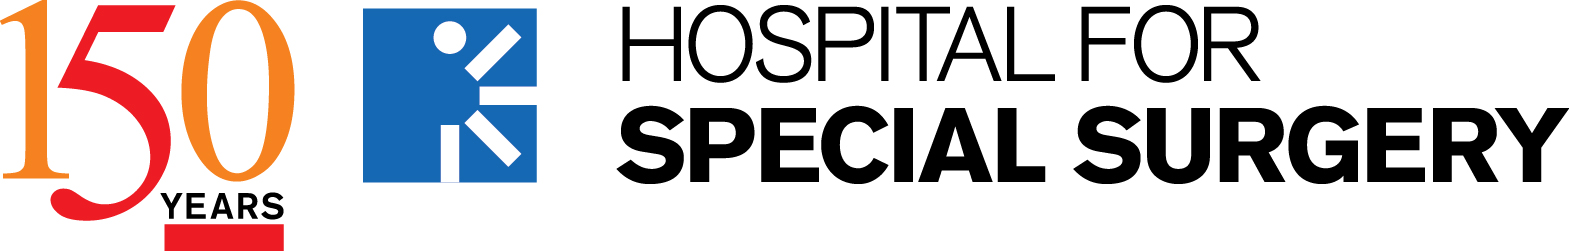 hospital for special surgery: